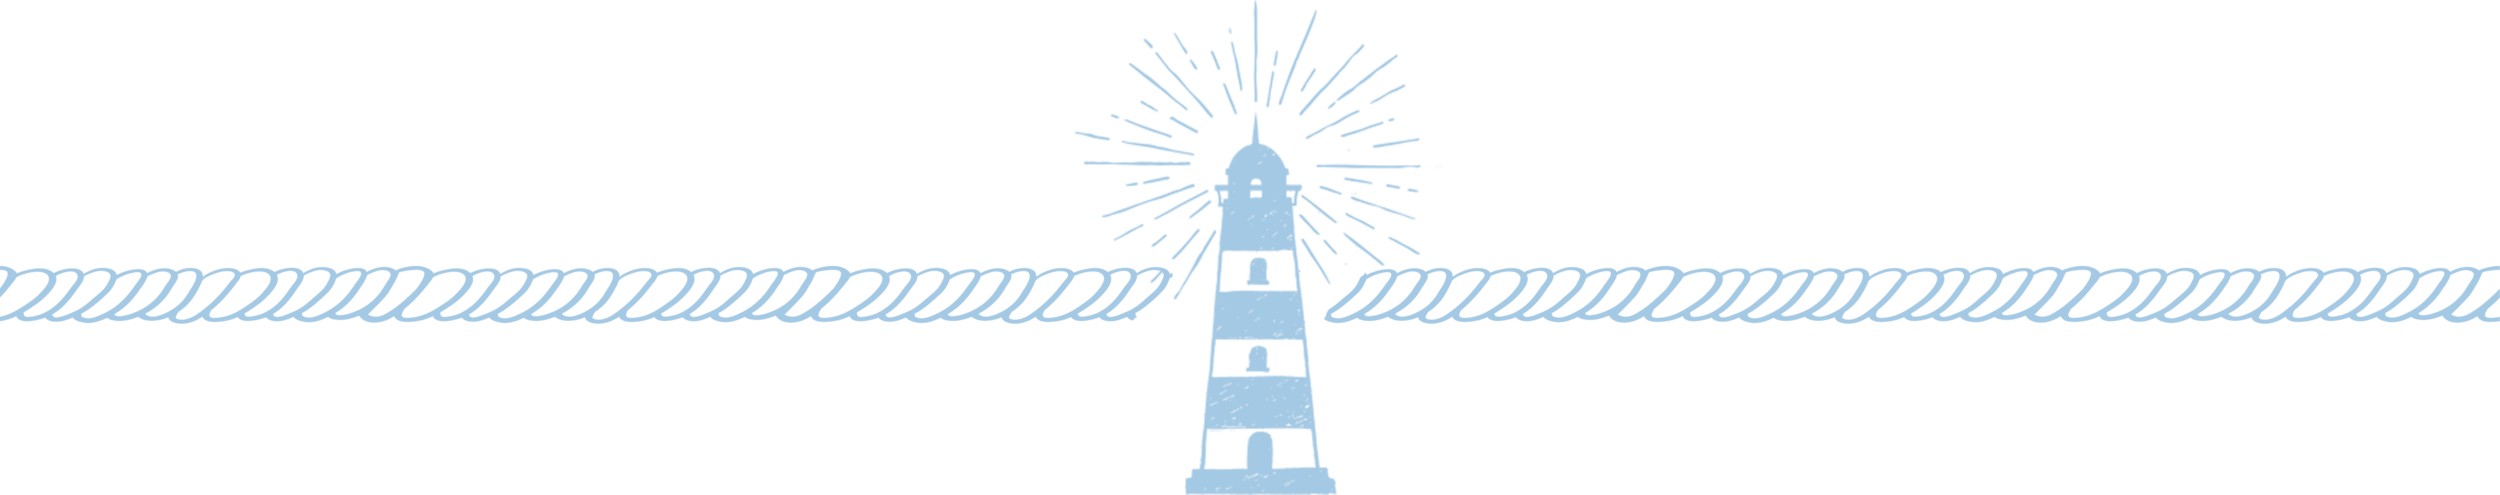 lighthouse rope.png